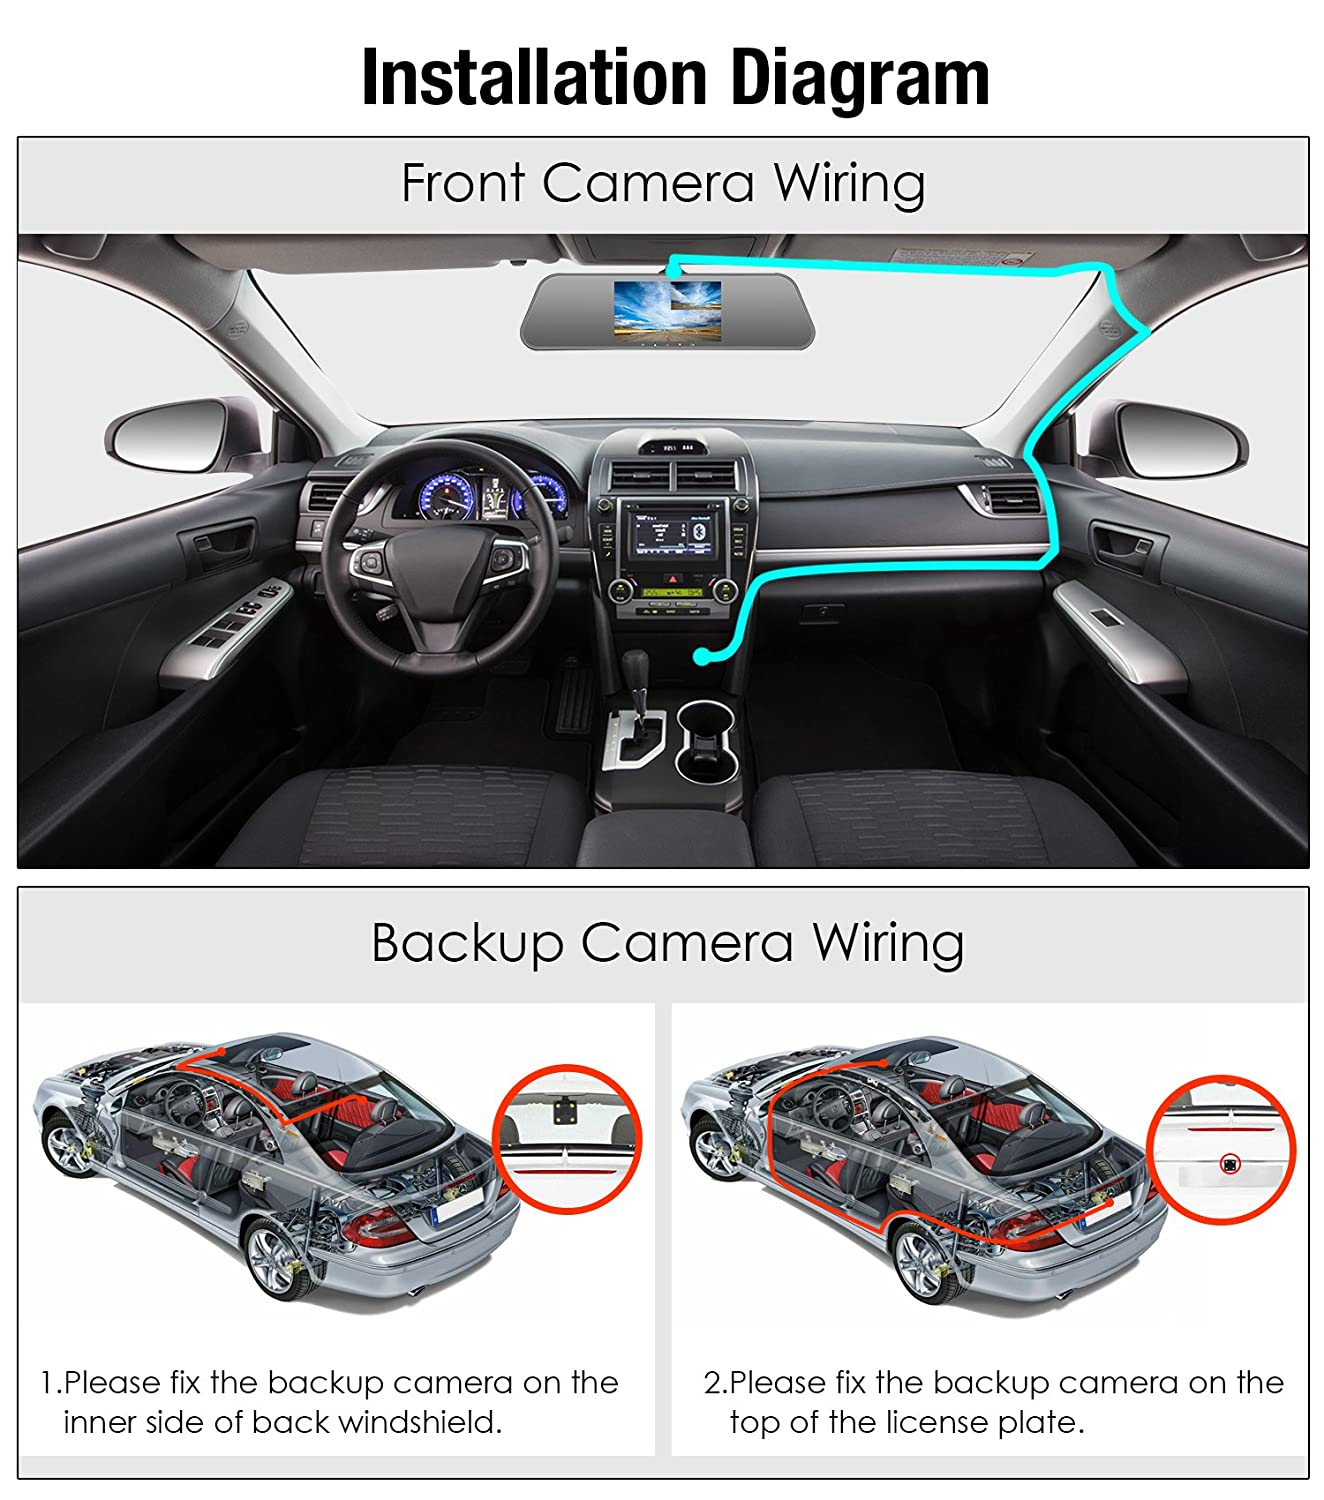 Pumpkin Mirror Dash Cam Front And Rear 1080p Ahd 720p Dual Camera Wiring Diagram With Starlight Level Night